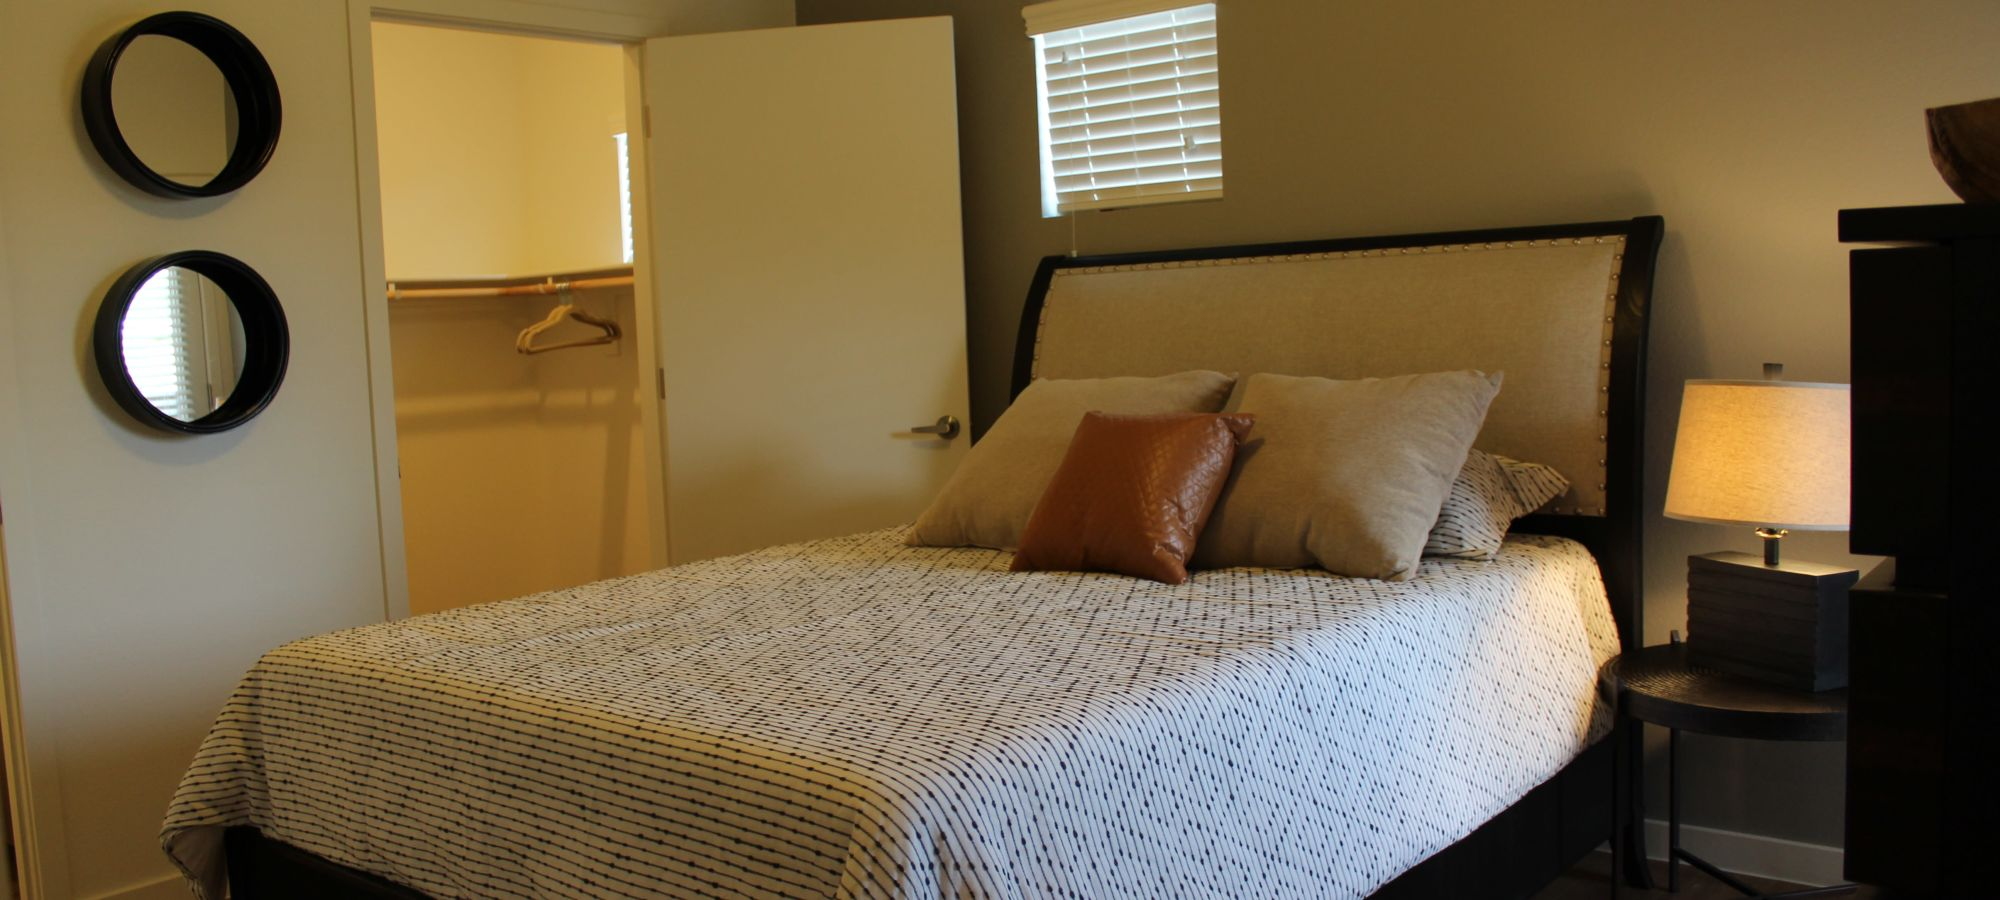 Master bedroom with walk-in closet at The Maxx 159 in Goodyear, Arizona